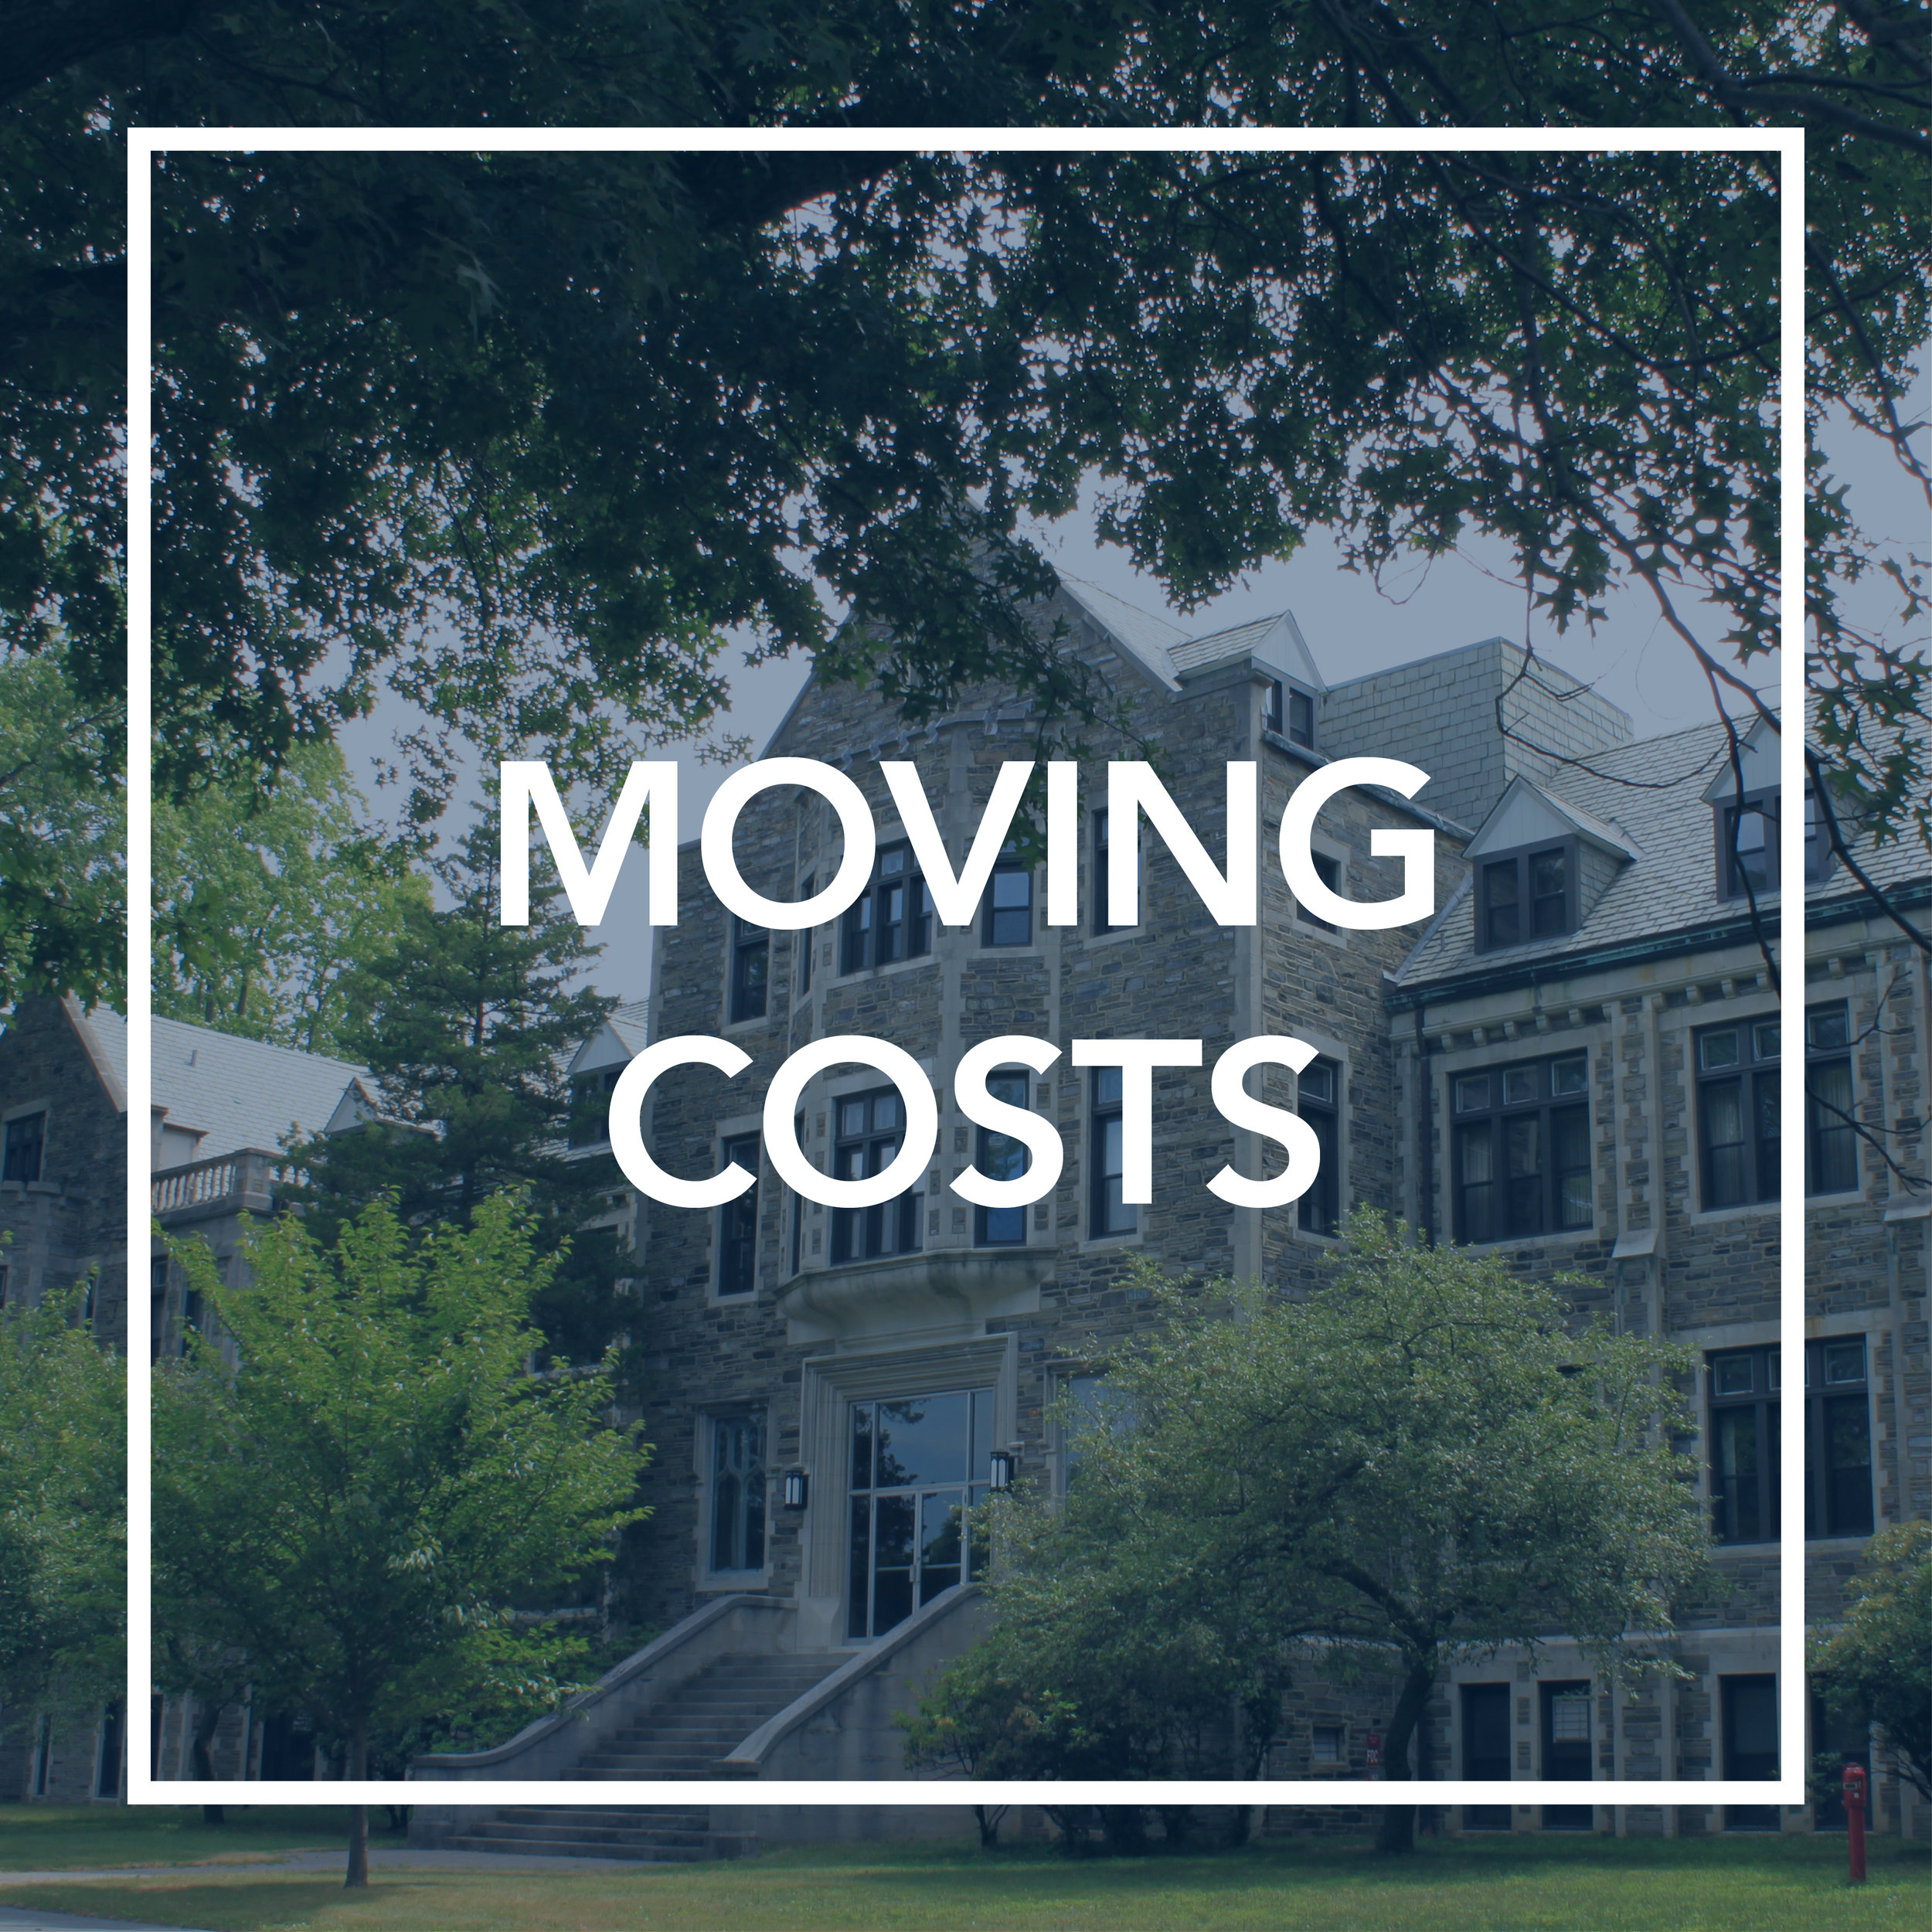 moving costs.jpg